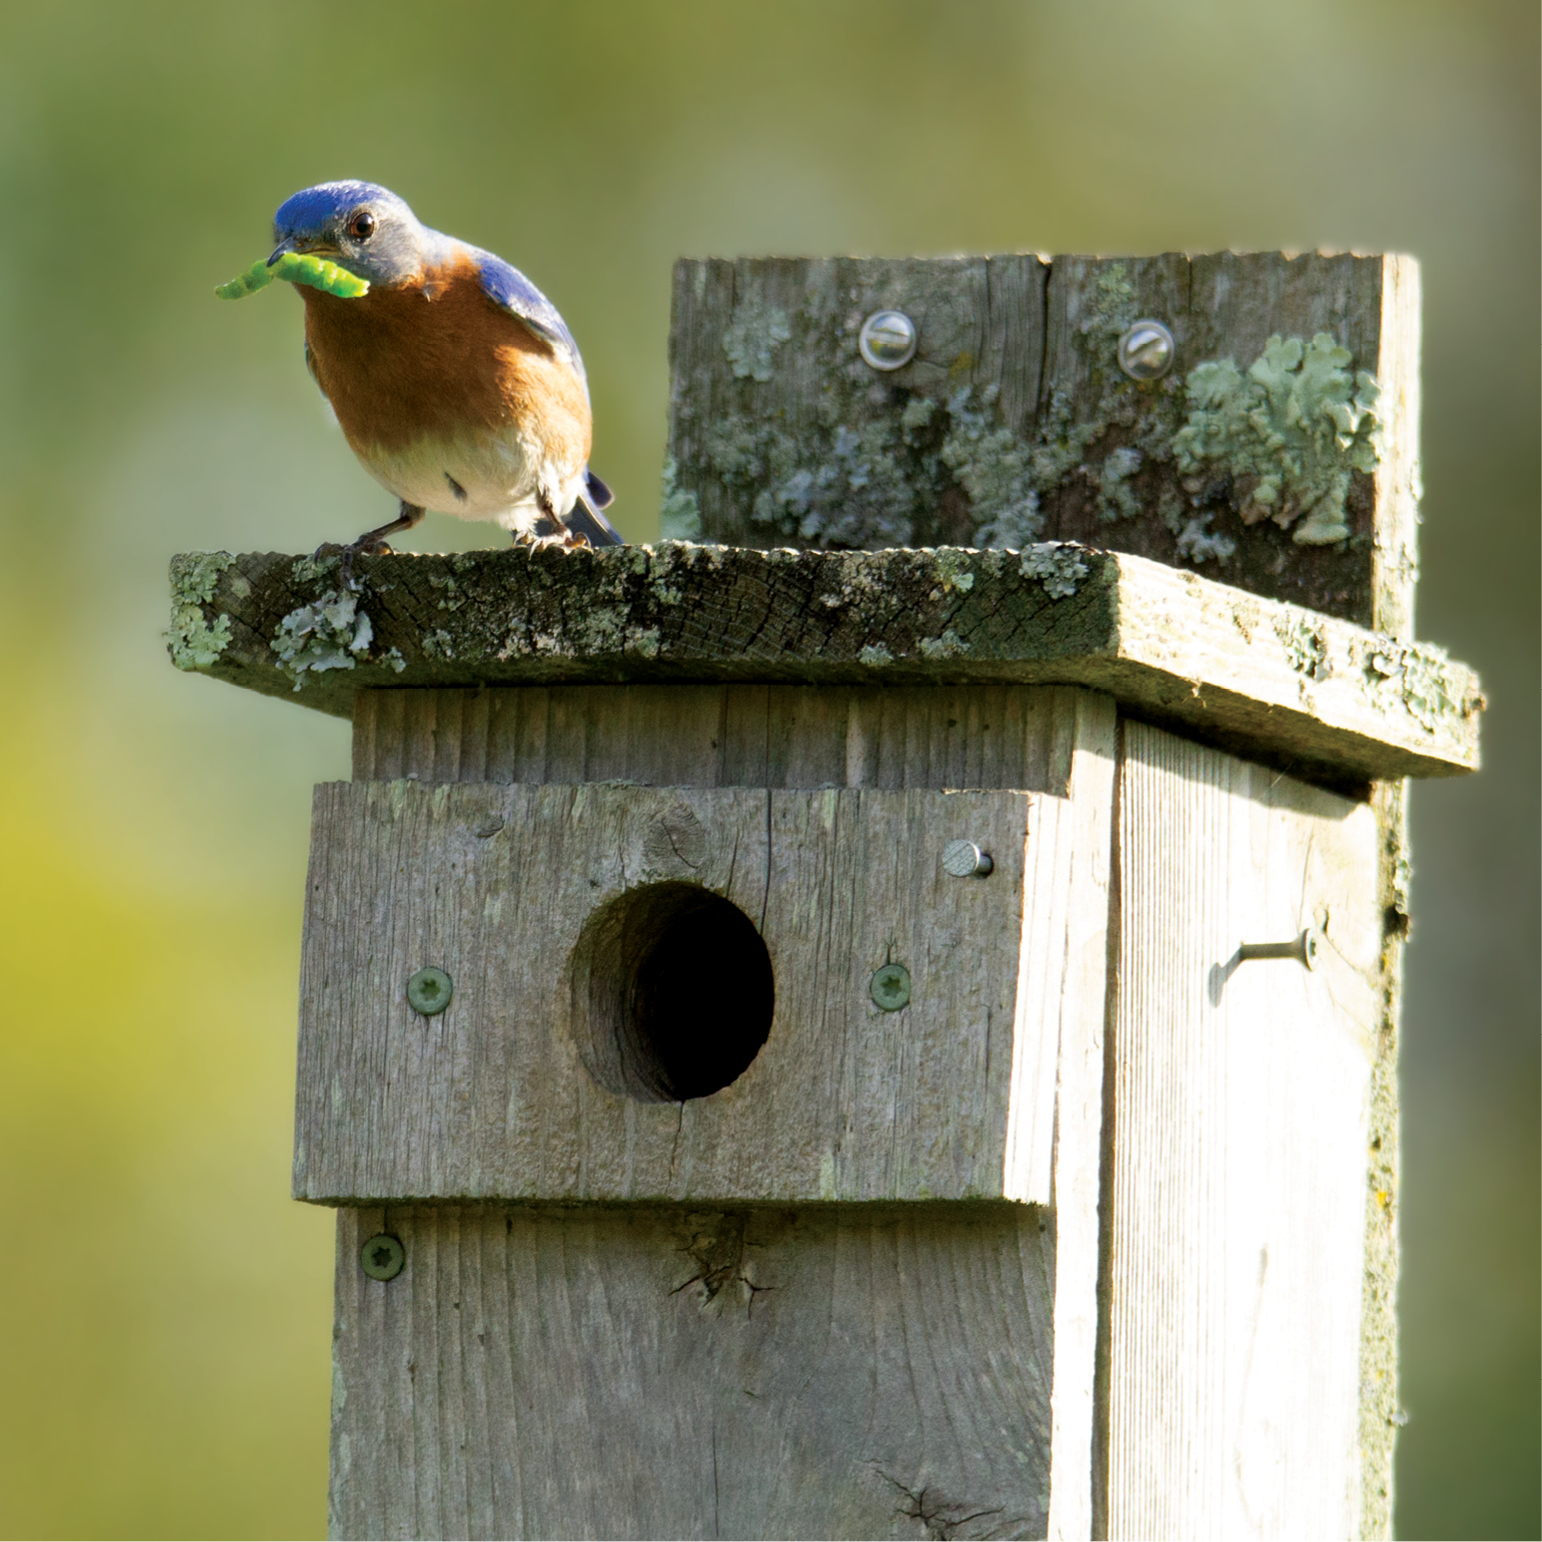 Image of a male Eastern Bluebird with a green caterpillar in its mouth, perched on a bluebird house with a green caterpillar in its mouth, perched on a bluebird house